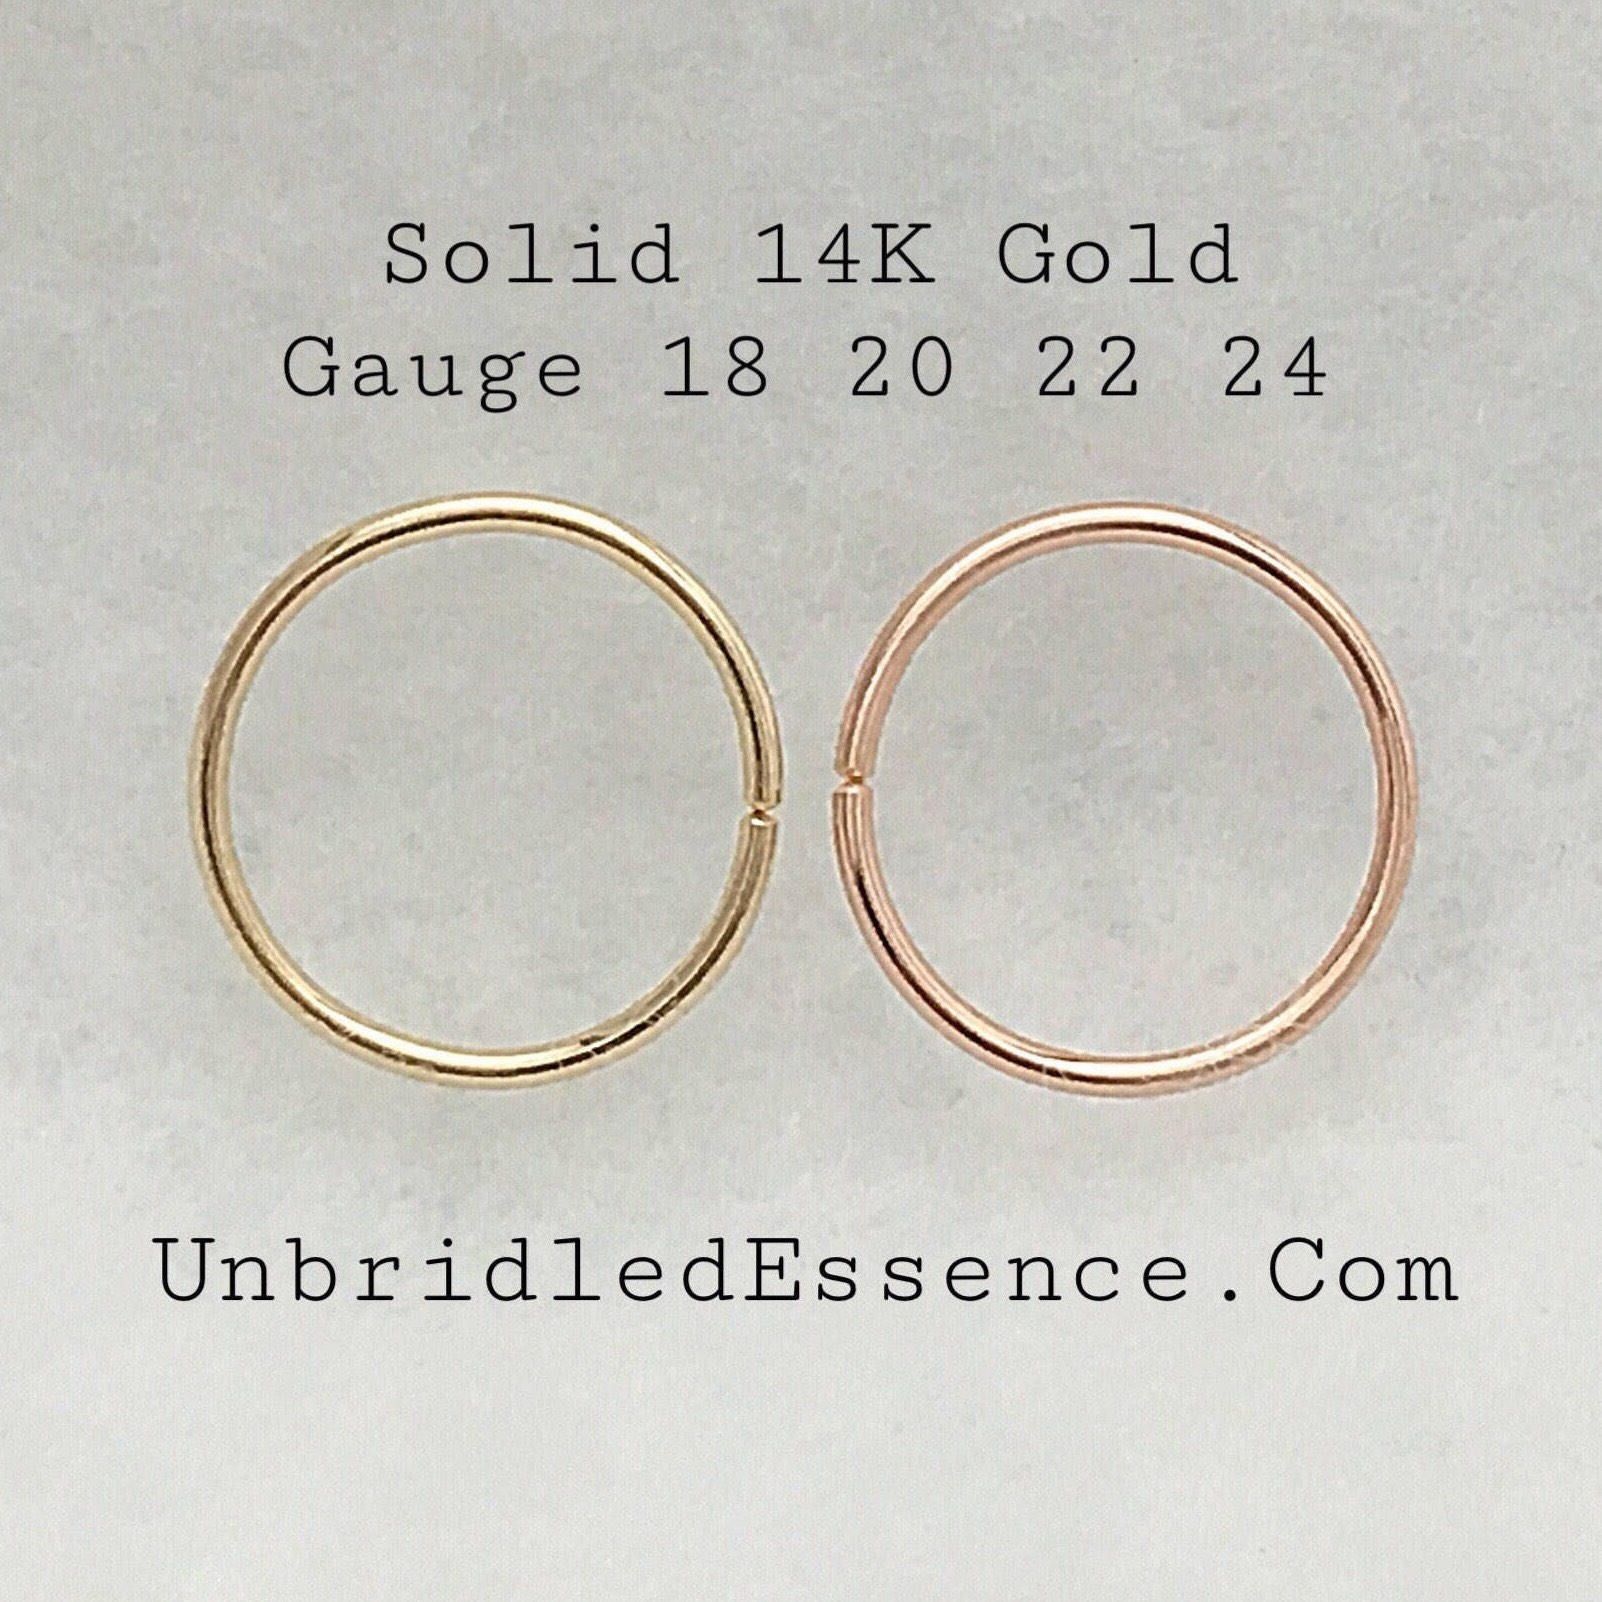 Pin On Gold Nose Piercing Jewelry